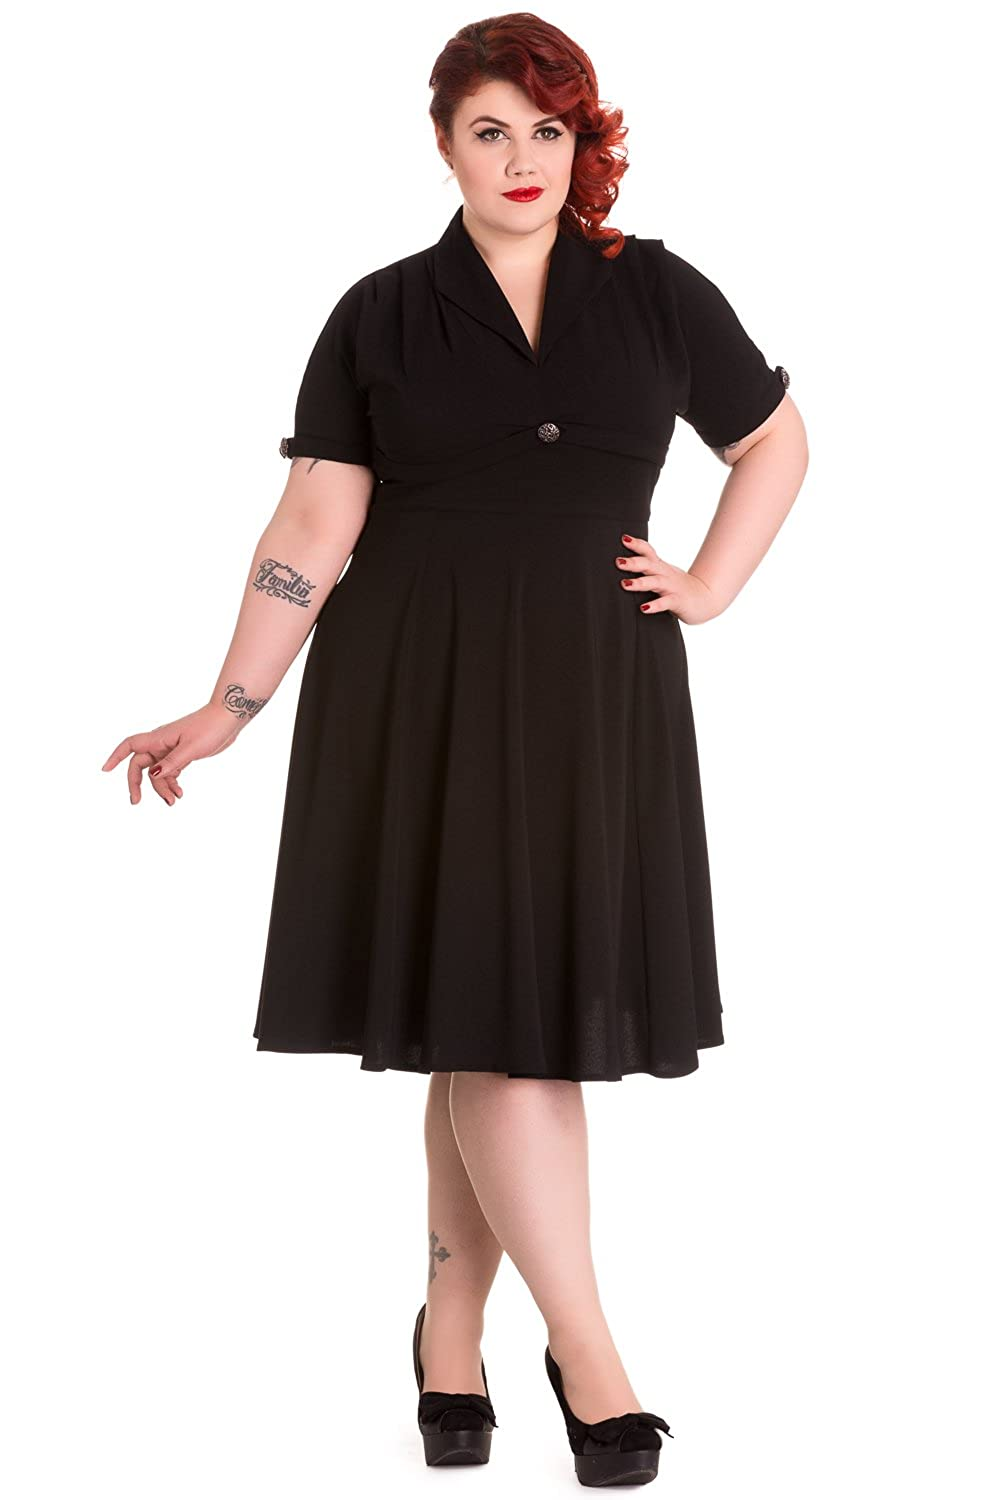 60s 70s Plus Size Dresses, Clothing, Costumes Hell Bunny Plus Size 60s Vintage Style Jocelyn Flare PartyDress $87.00 AT vintagedancer.com